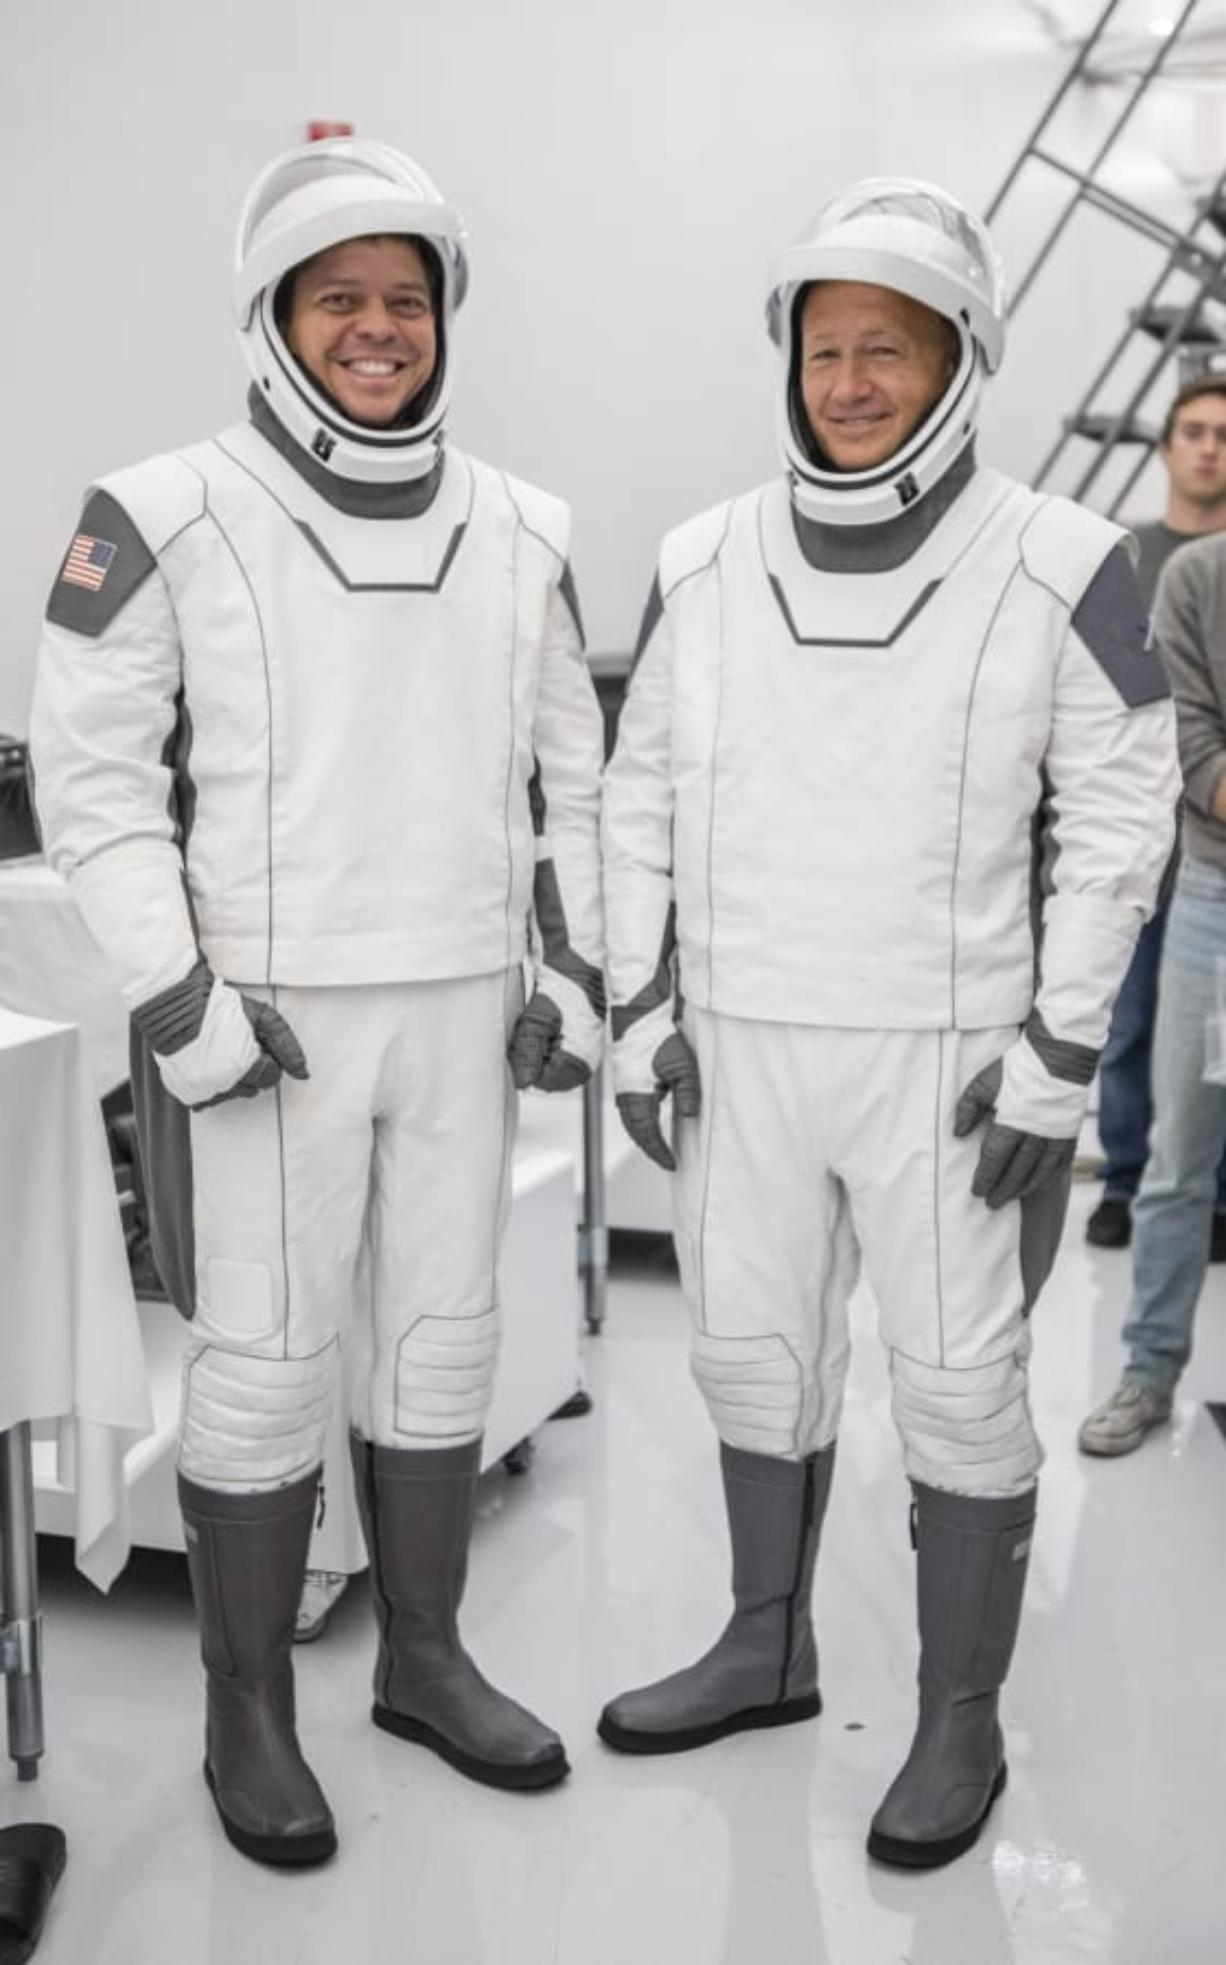 Astronauts Bob Behnken, left, and Doug Hurley in Hawthorne, Calif., during a joint training event between NASA and SpaceX in July.